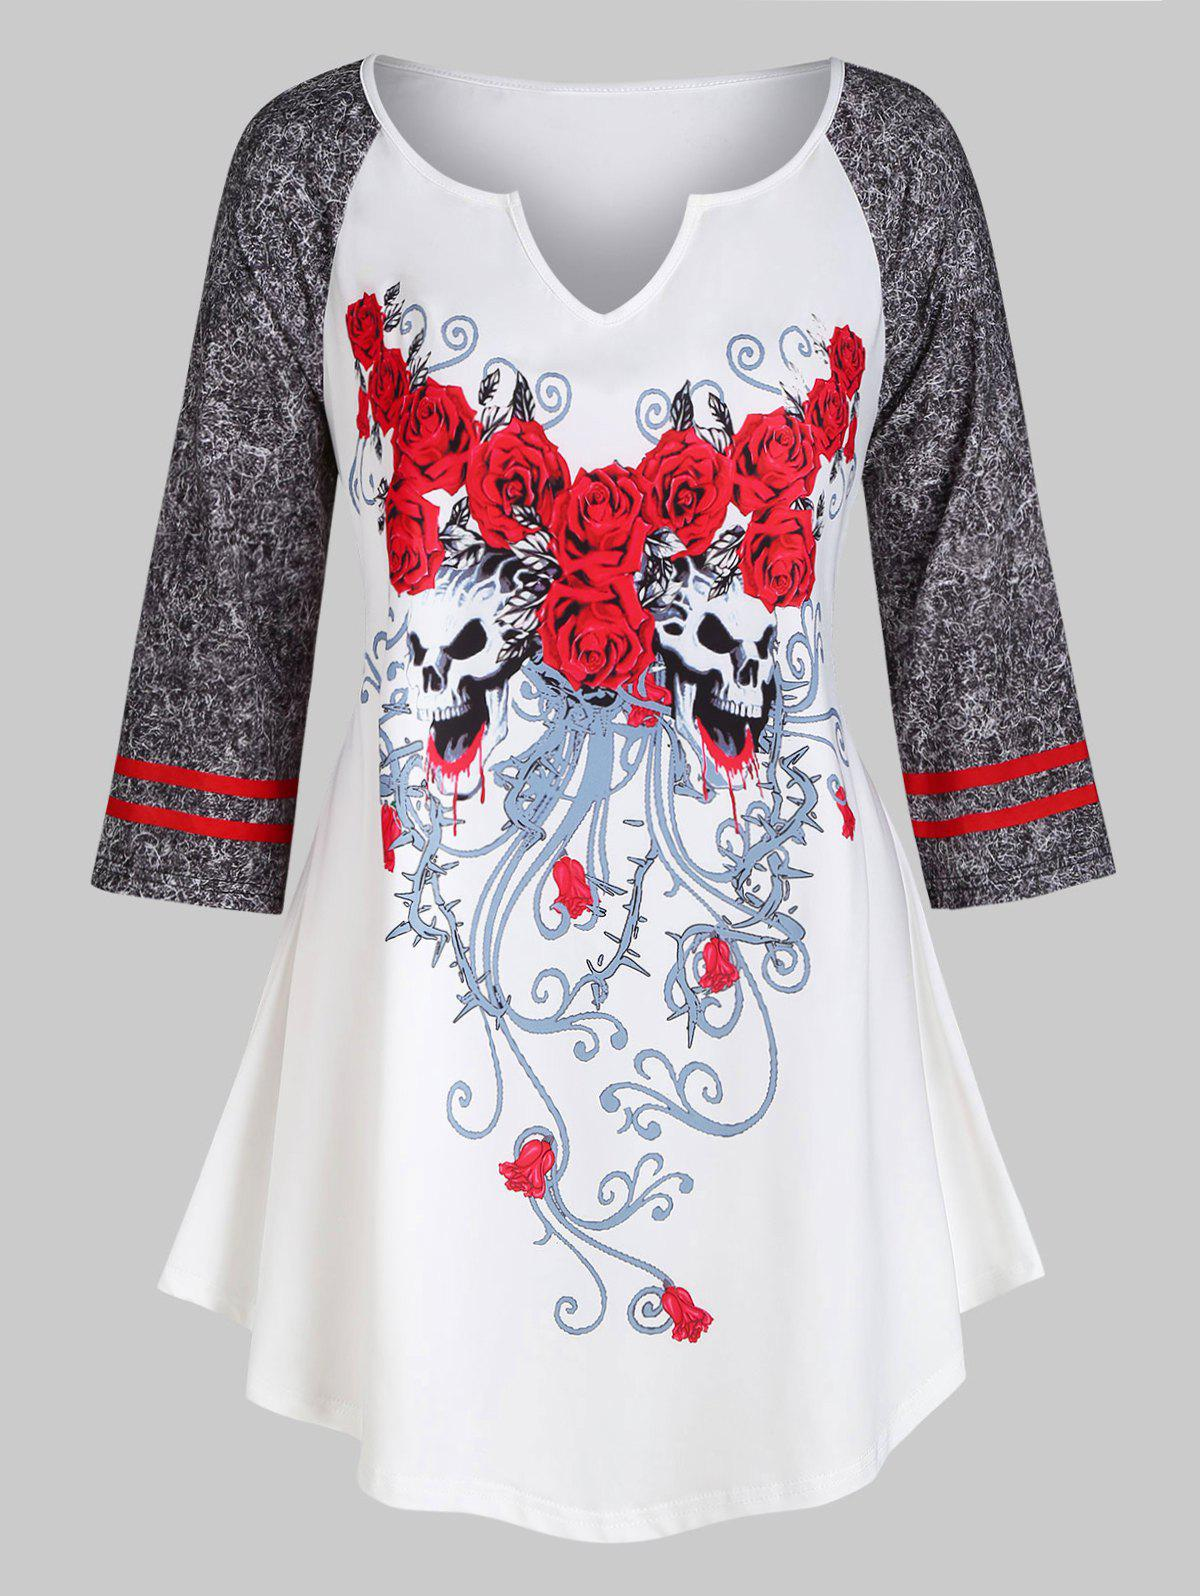 Raglan Sleeve Floral Skull Halloween Plus Size Top - WHITE L